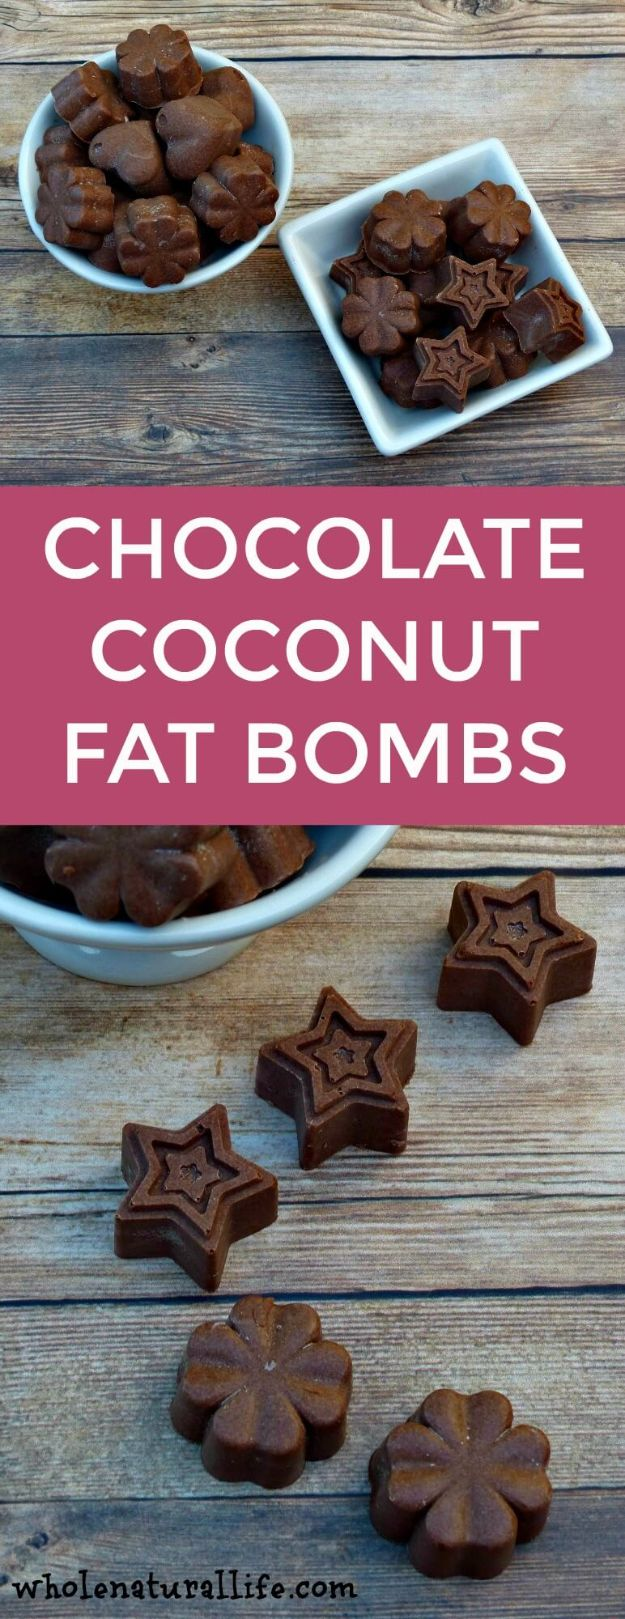 Keto Fat Bombs and Best Ketogenic Recipe Ideas to Make At Home - Chocolate Coconut Fat Bombs - Easy Recipes With Peanut Butter, Cream Cheese, Chocolate, Coconut Oil, Coffee low carb fat bombs #keto #ketorecipes